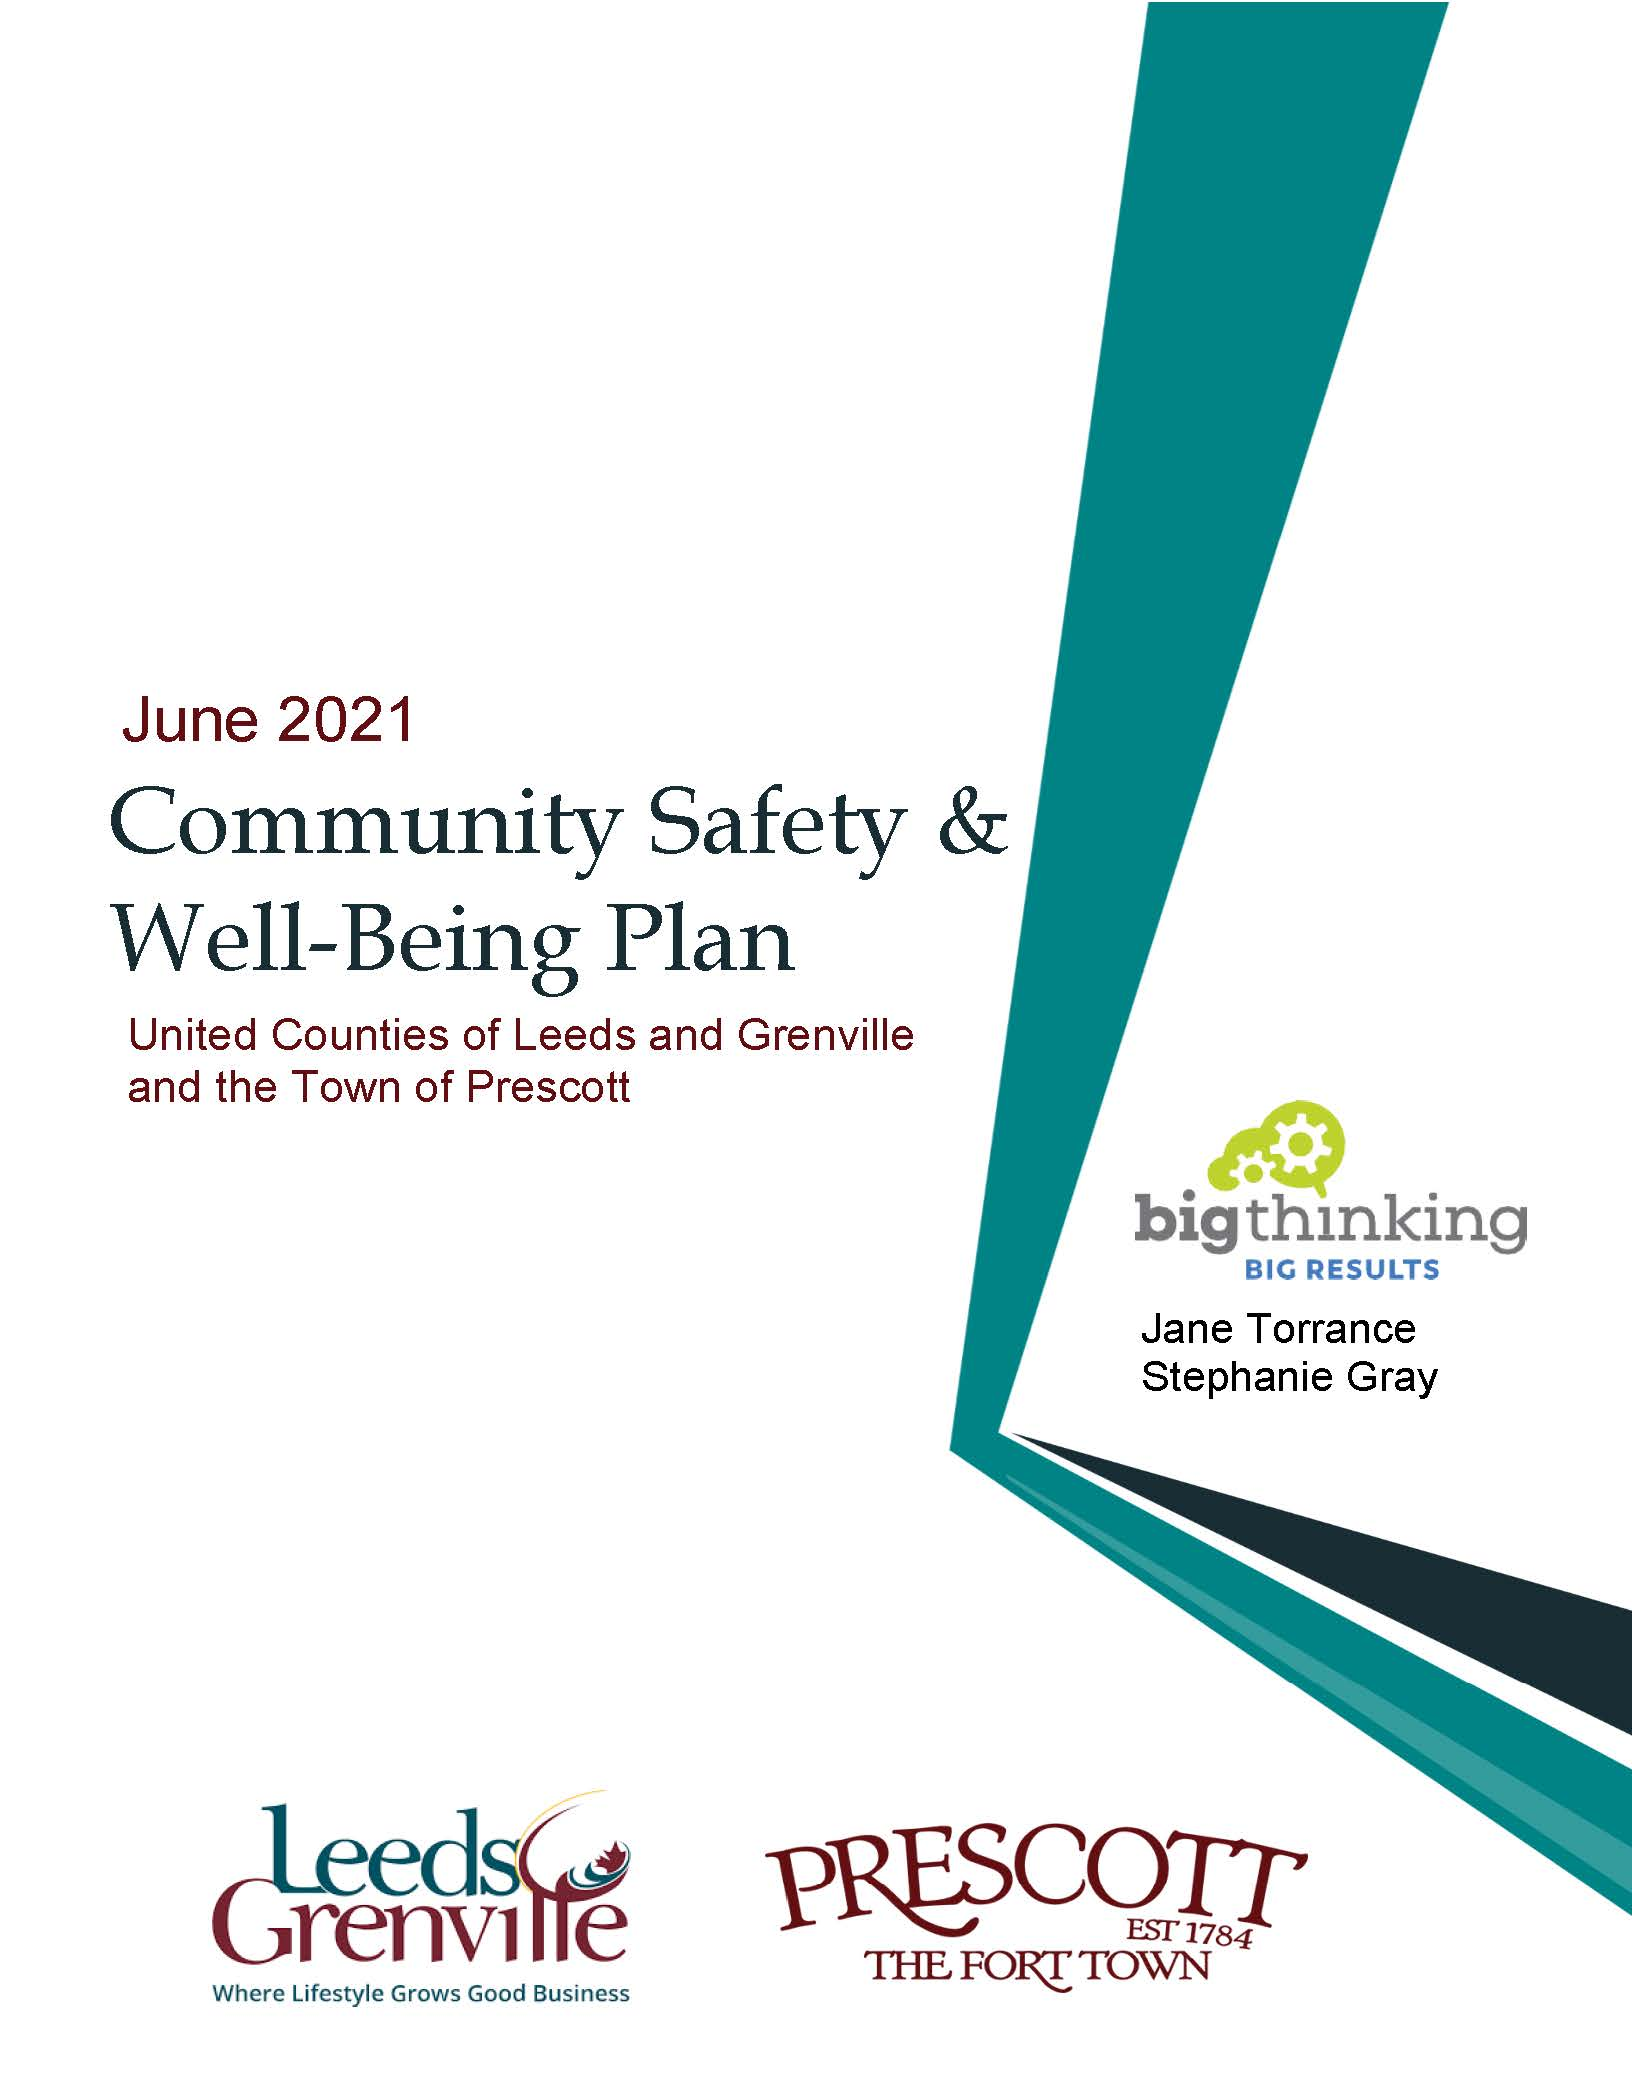 Cover page of the June 2021 Community Safety & Well-Being Plan for the United Counties of Leeds & Grenville and the Town of Prescott